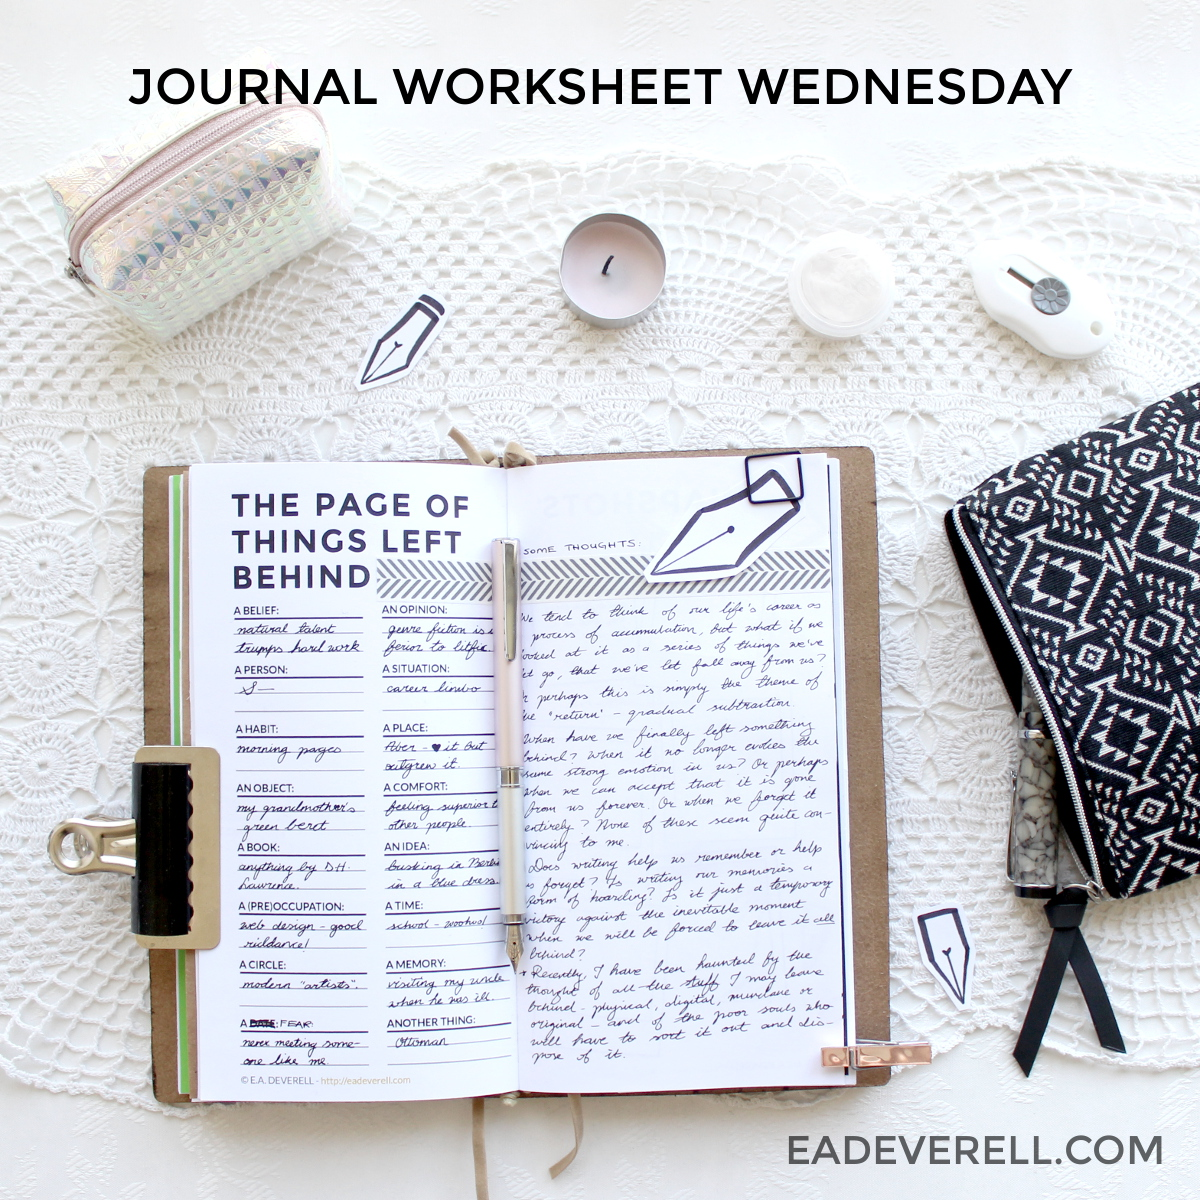 Snapshots Journal Worksheet Wednesday